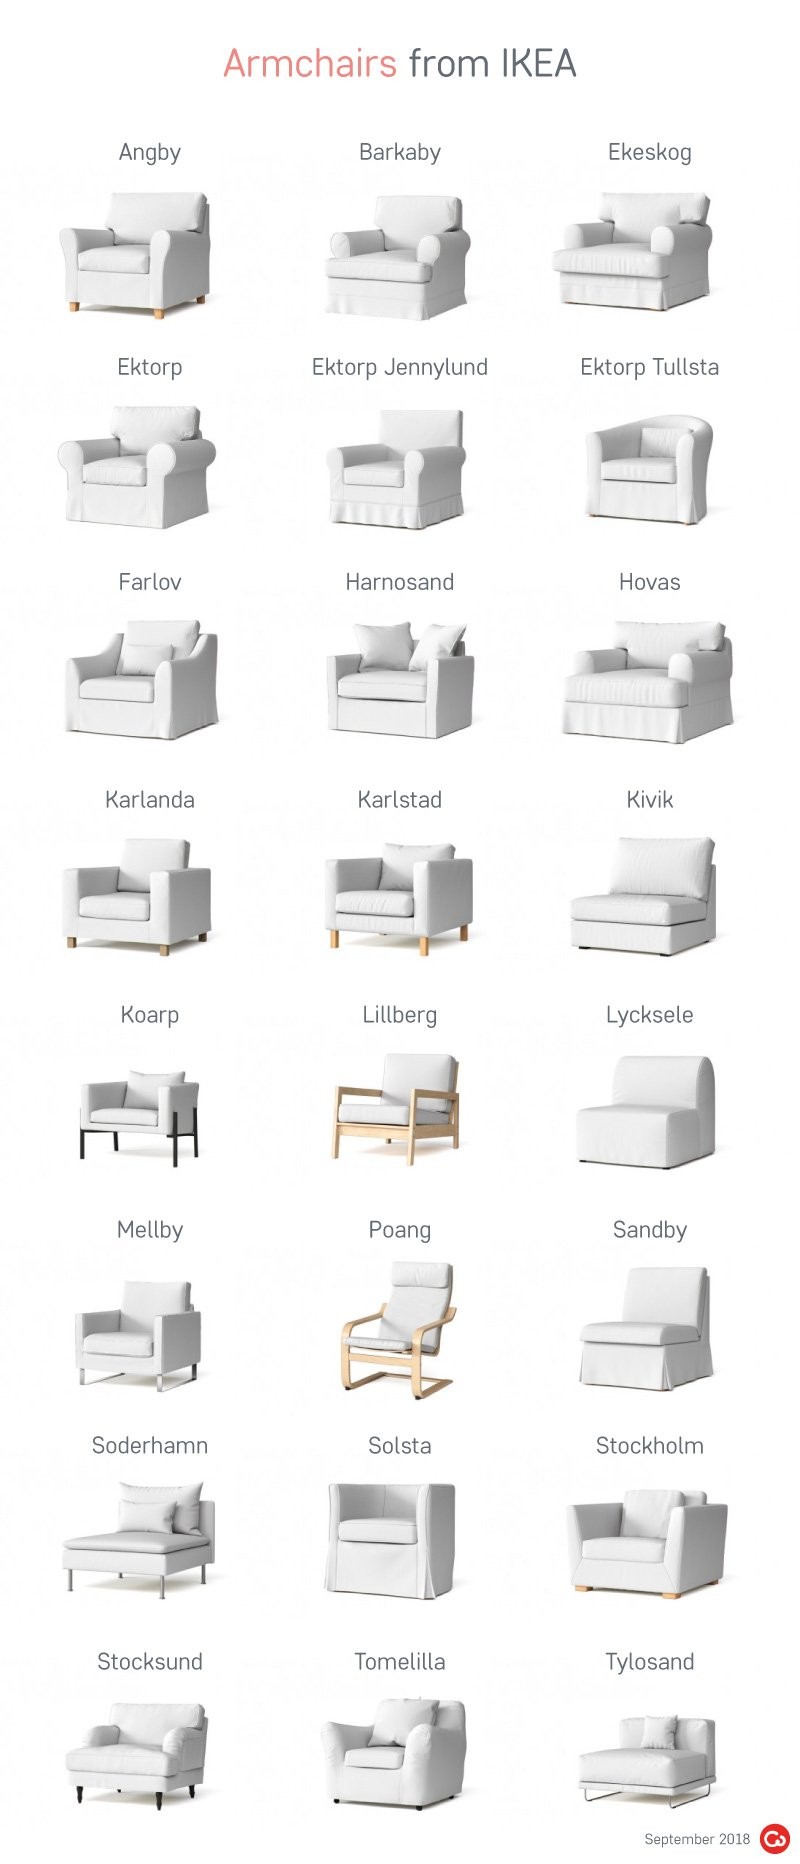 Ikea Solsta Bettsofa Deutschland Replacement Ikea Sofa Covers For Discontinued Ikea Couch Models